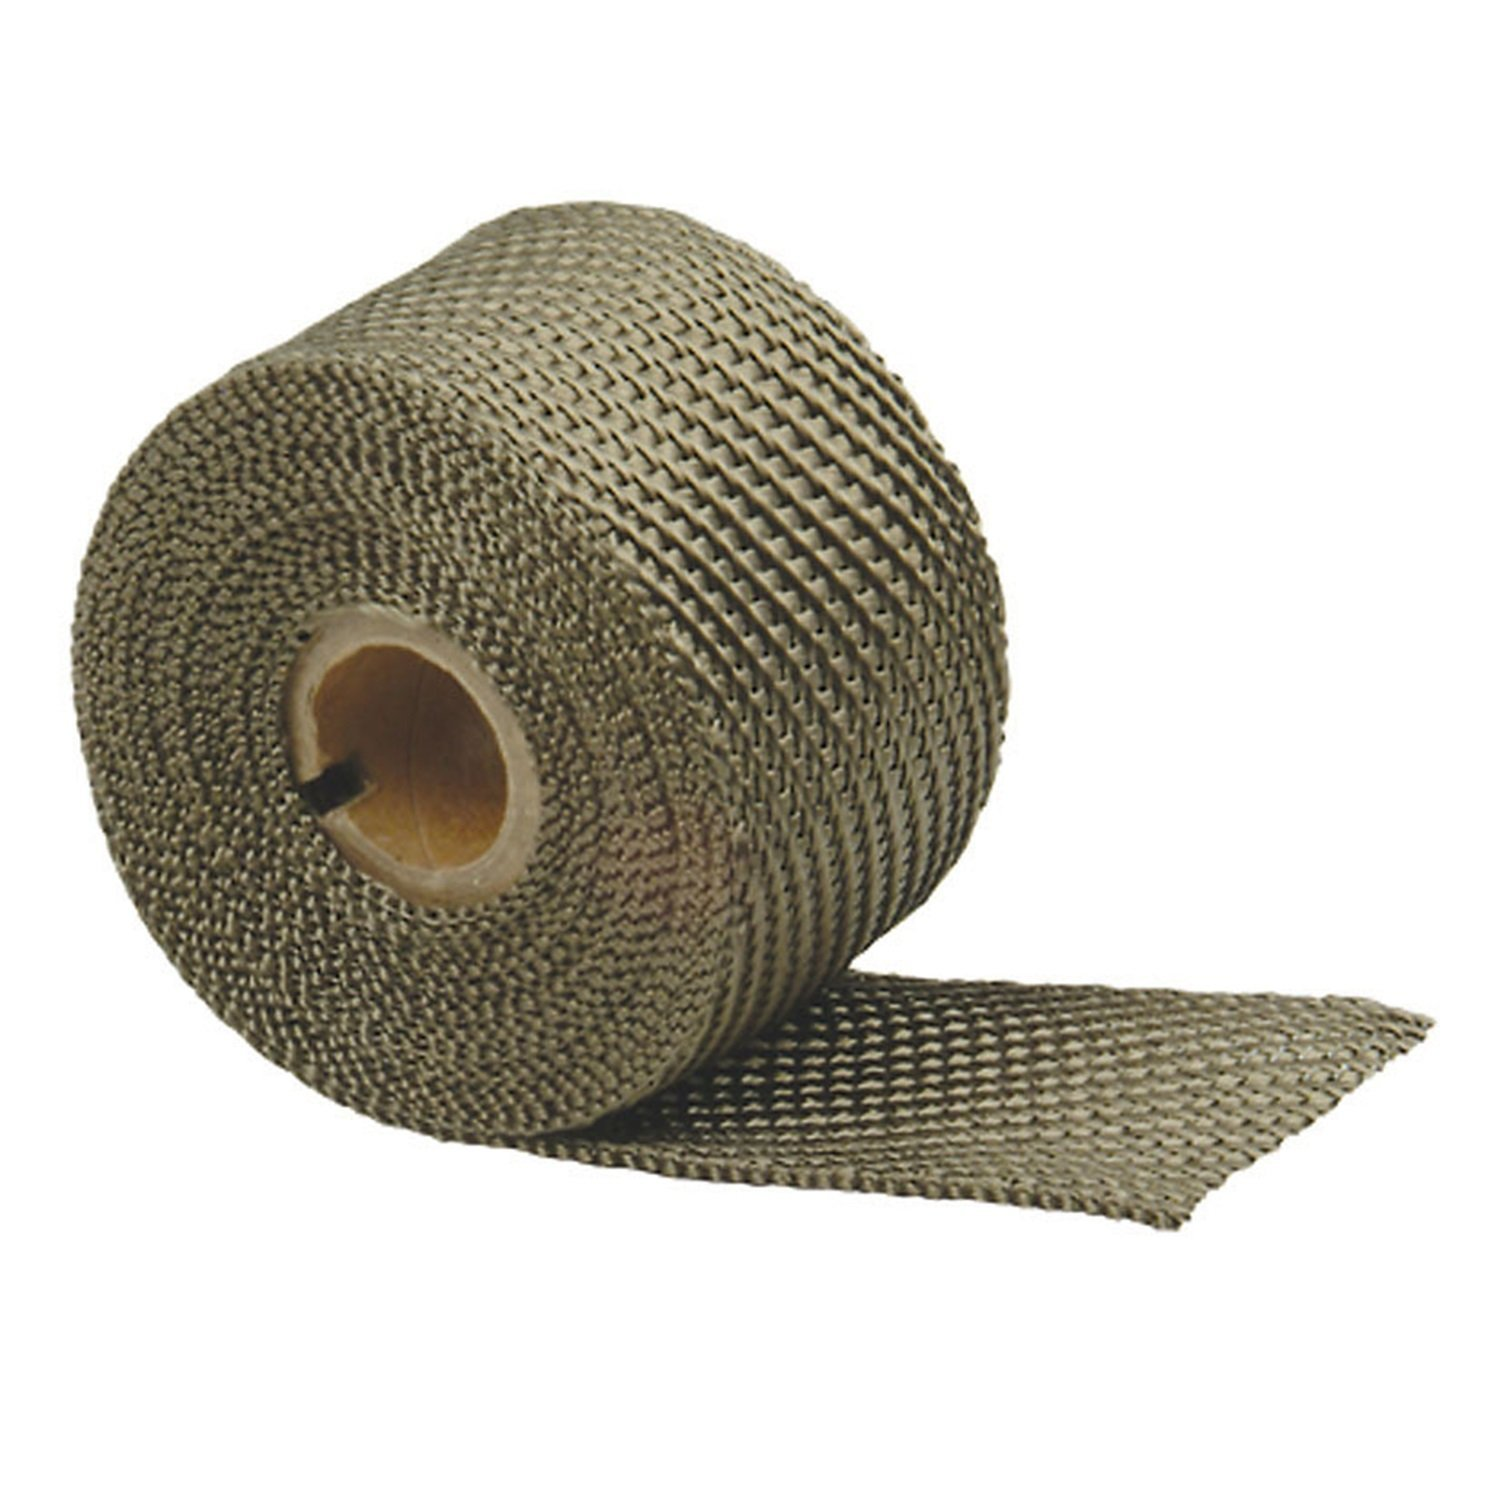 2 x 100 Roll Design Engineering 010130 Titanium Exhaust Heat Wrap with LR Technology